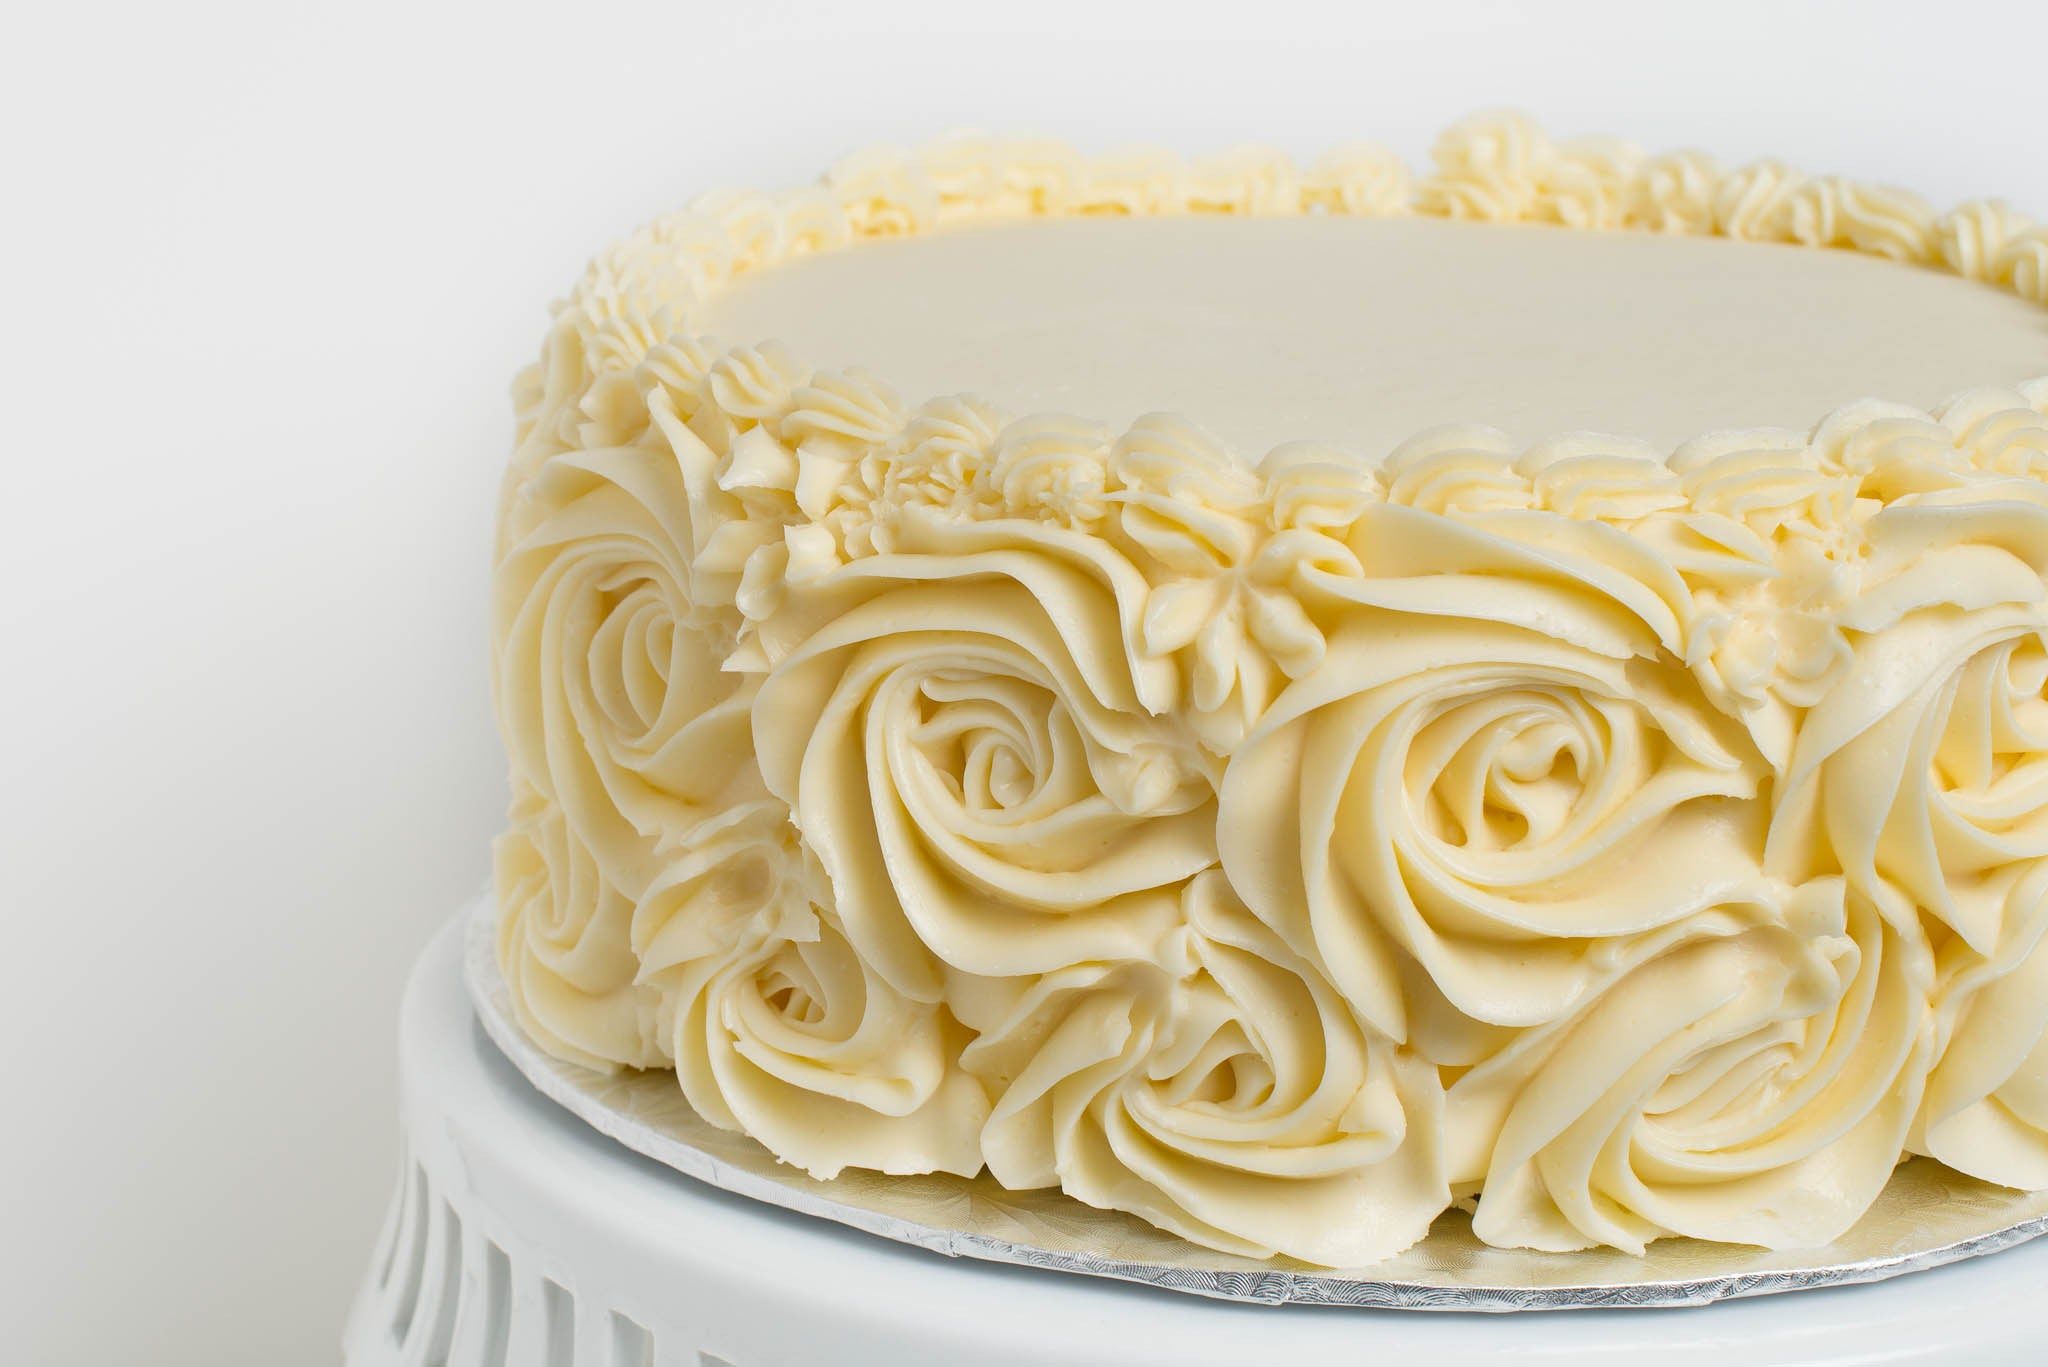 Vanilla Cake with Large Rosettes